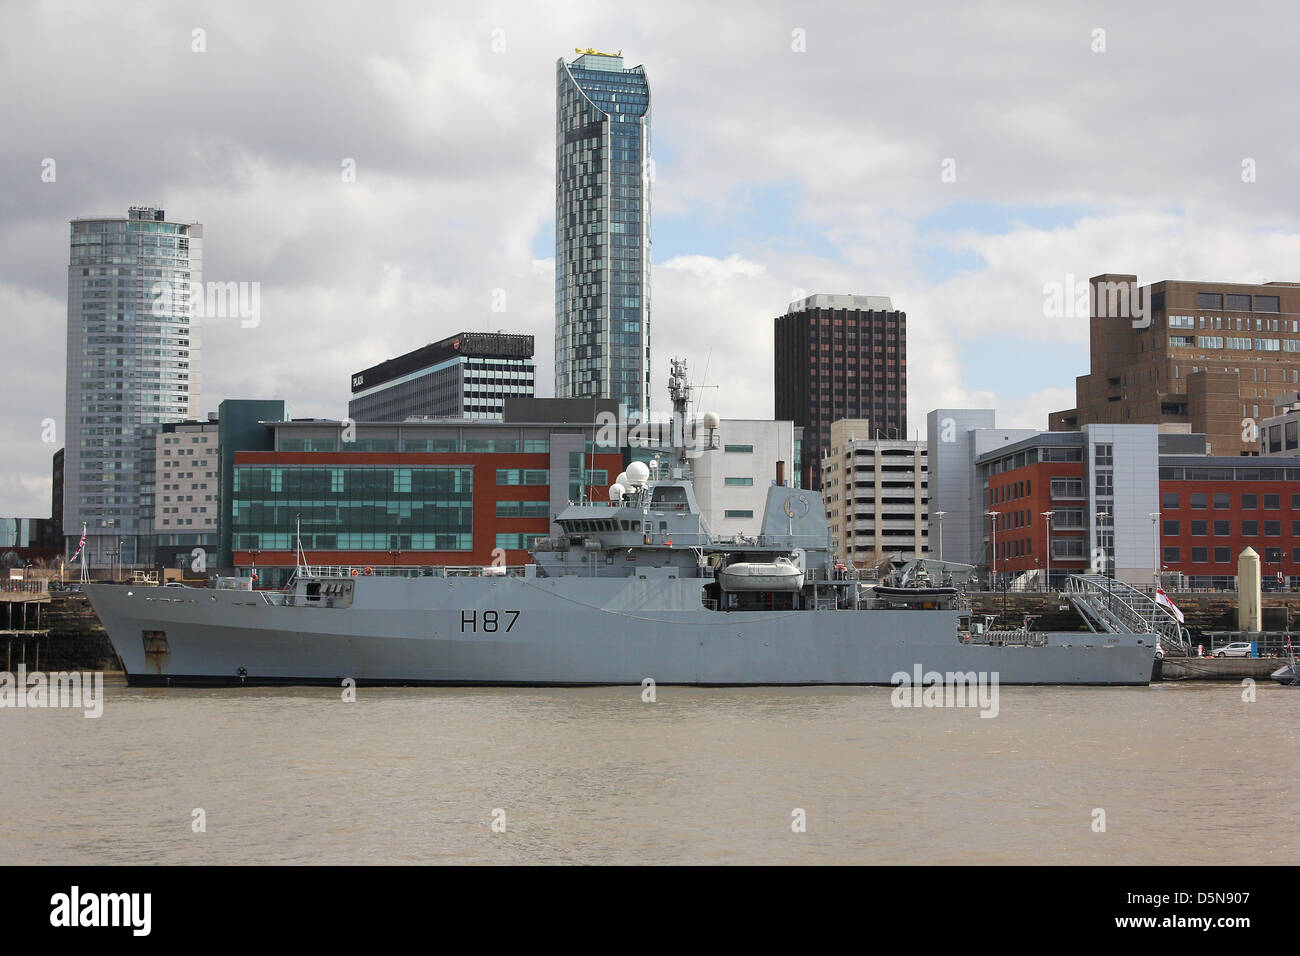 Liverpool, UK. 5th April 2013. Royal Navy's HMS Echo berthed at the terminal. Seven warships are berthed at - Stock Image